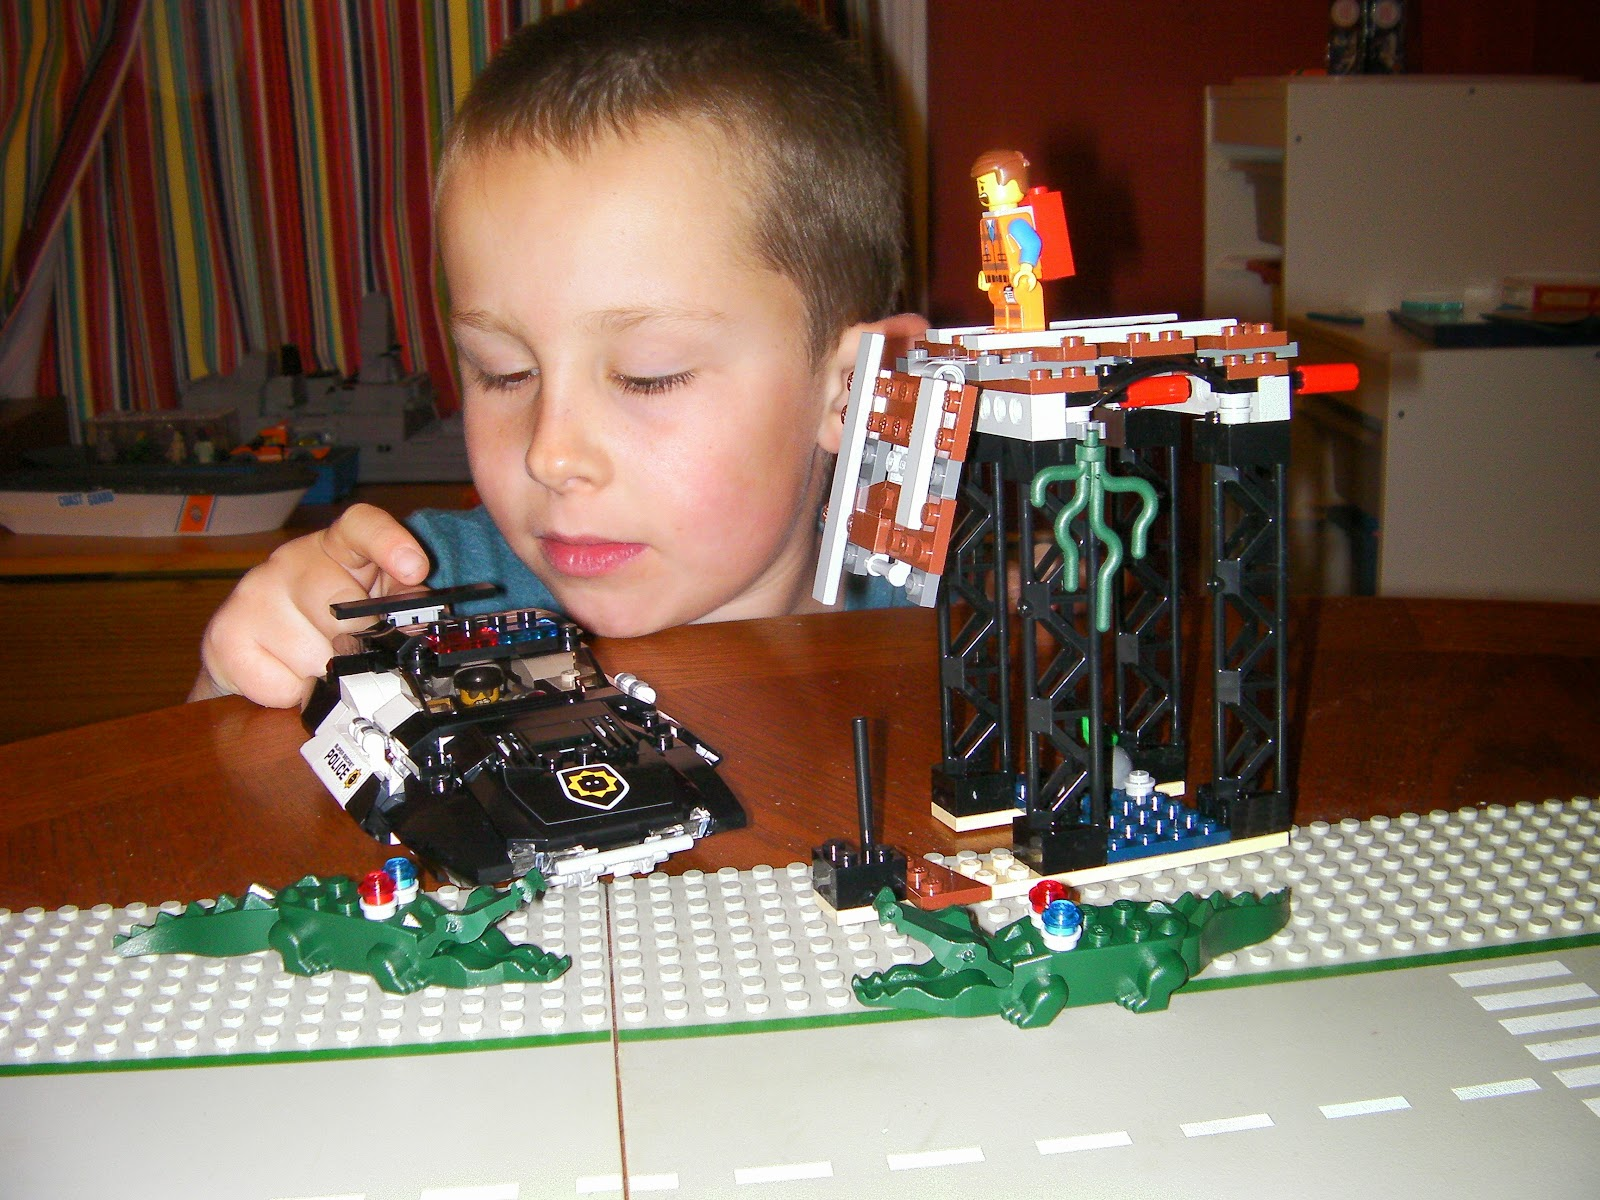 lego alligators emmett badcop chase